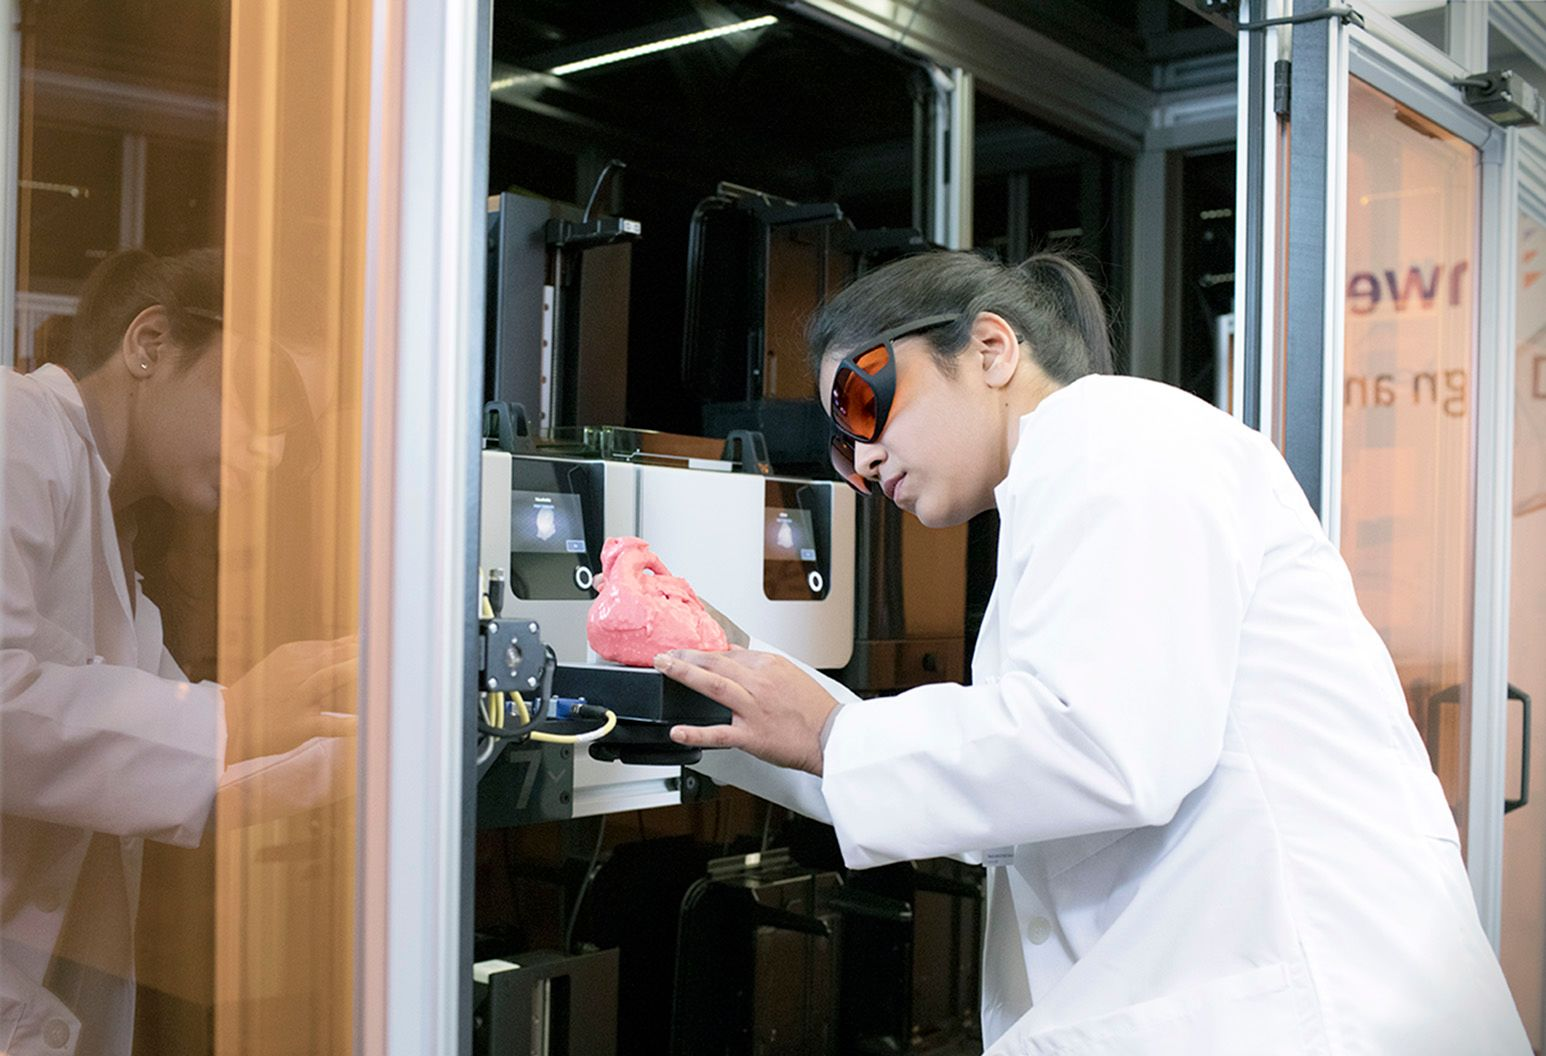 A female clinician in a white lab coat is in a lab standing in front of a 3D printing machine. She is holding a 3D printed model of a heart.